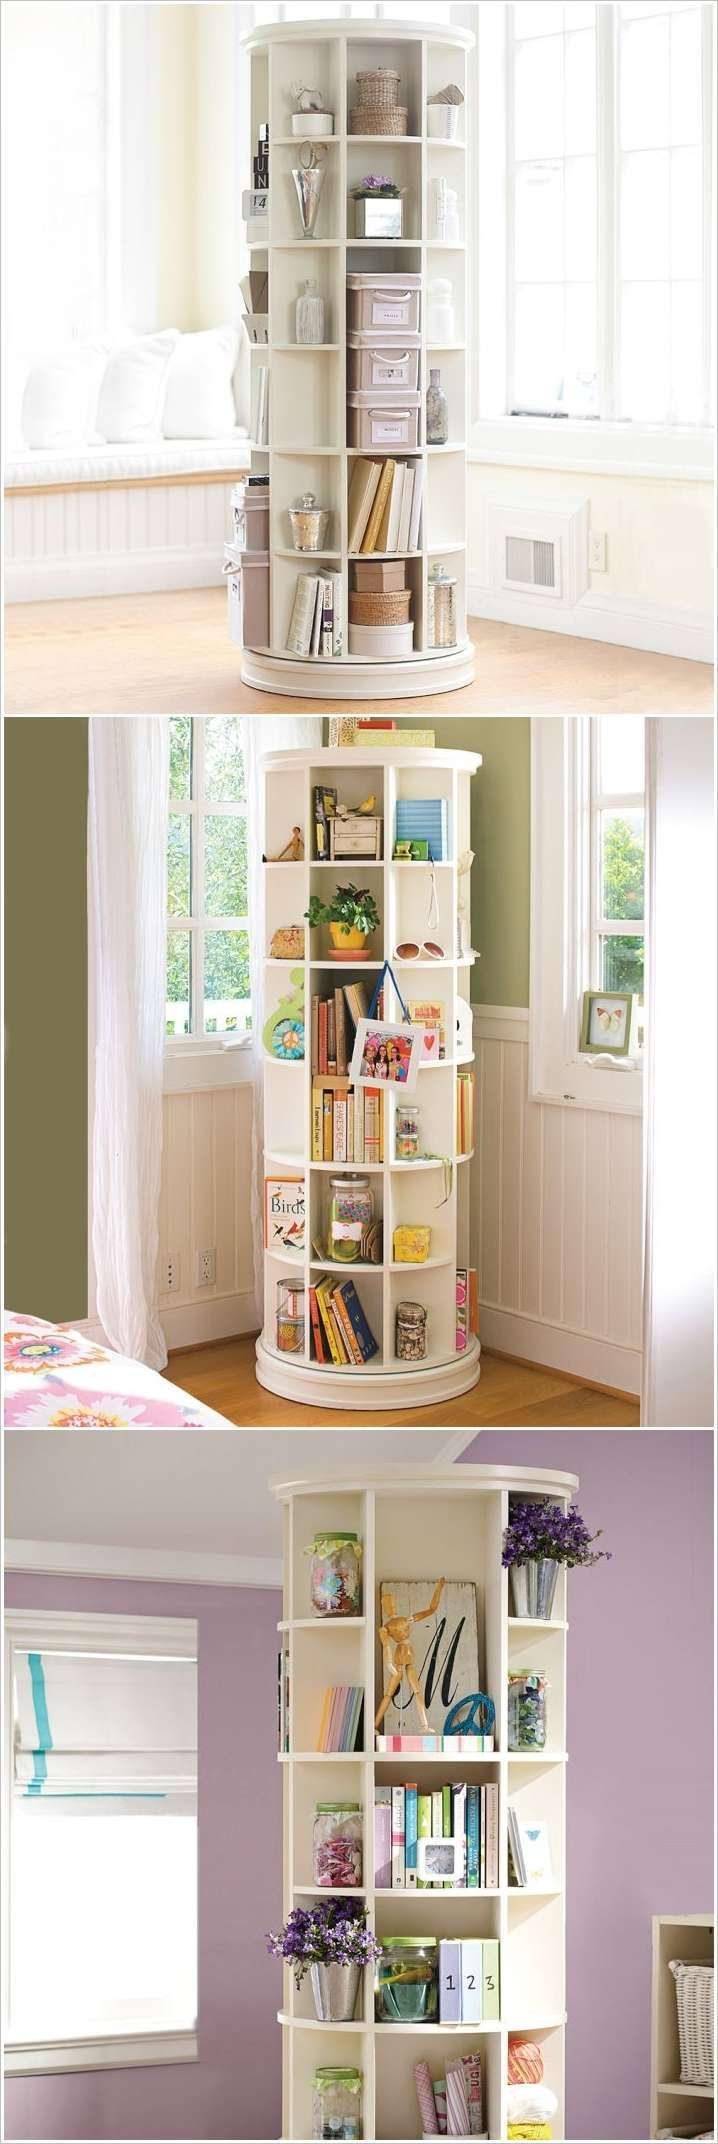 A Revolving Bookcase Loaded with Storage Space...plus more space saving  ideas for all areas of the home! | Pinterest | Revolving bookcase, Storage  and ...